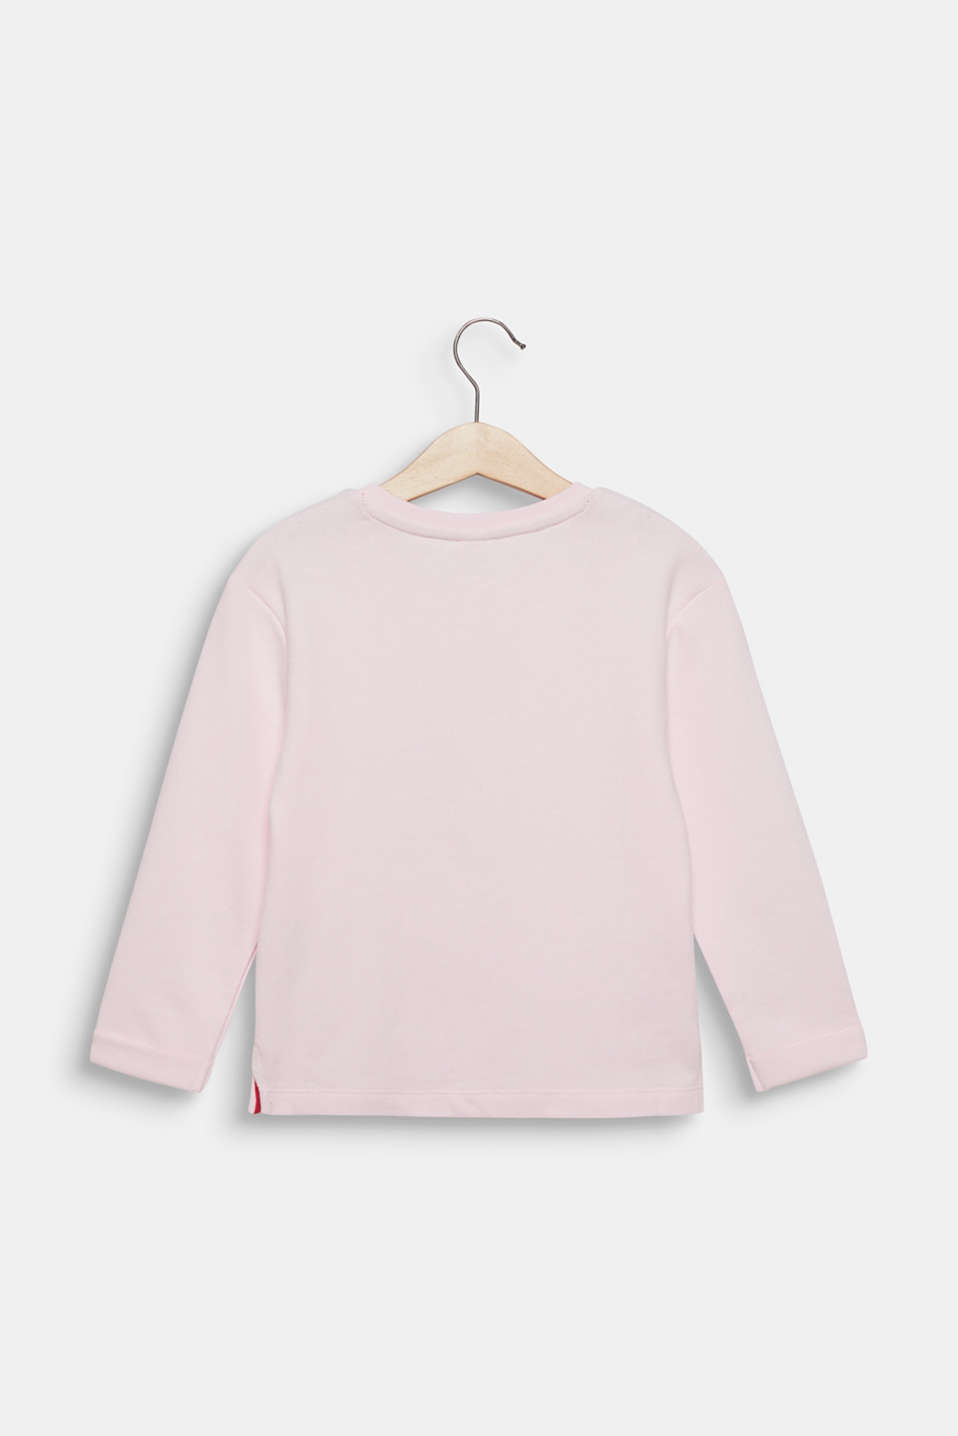 Sweatshirt with a print, 100% cotton, LIGHT PINK, detail image number 1